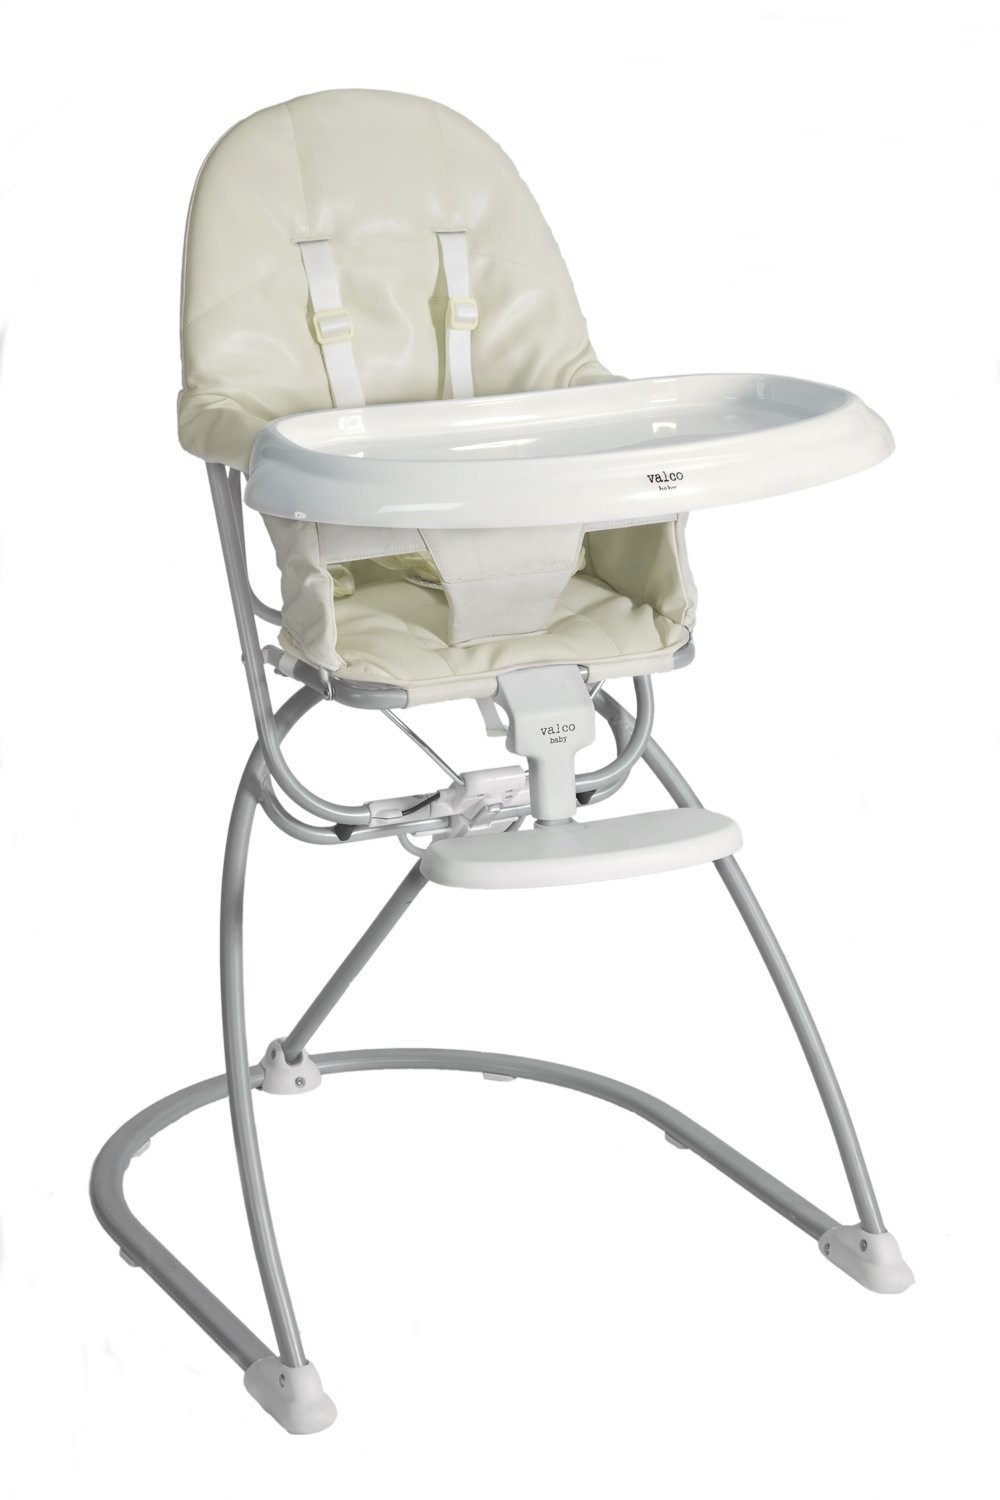 Perfect For Today`s Urban Lifestyle, The Chic Valco Baby Astro Lightweight High  Chair Simply Does What A Compact High Chair Should Do...with Style!